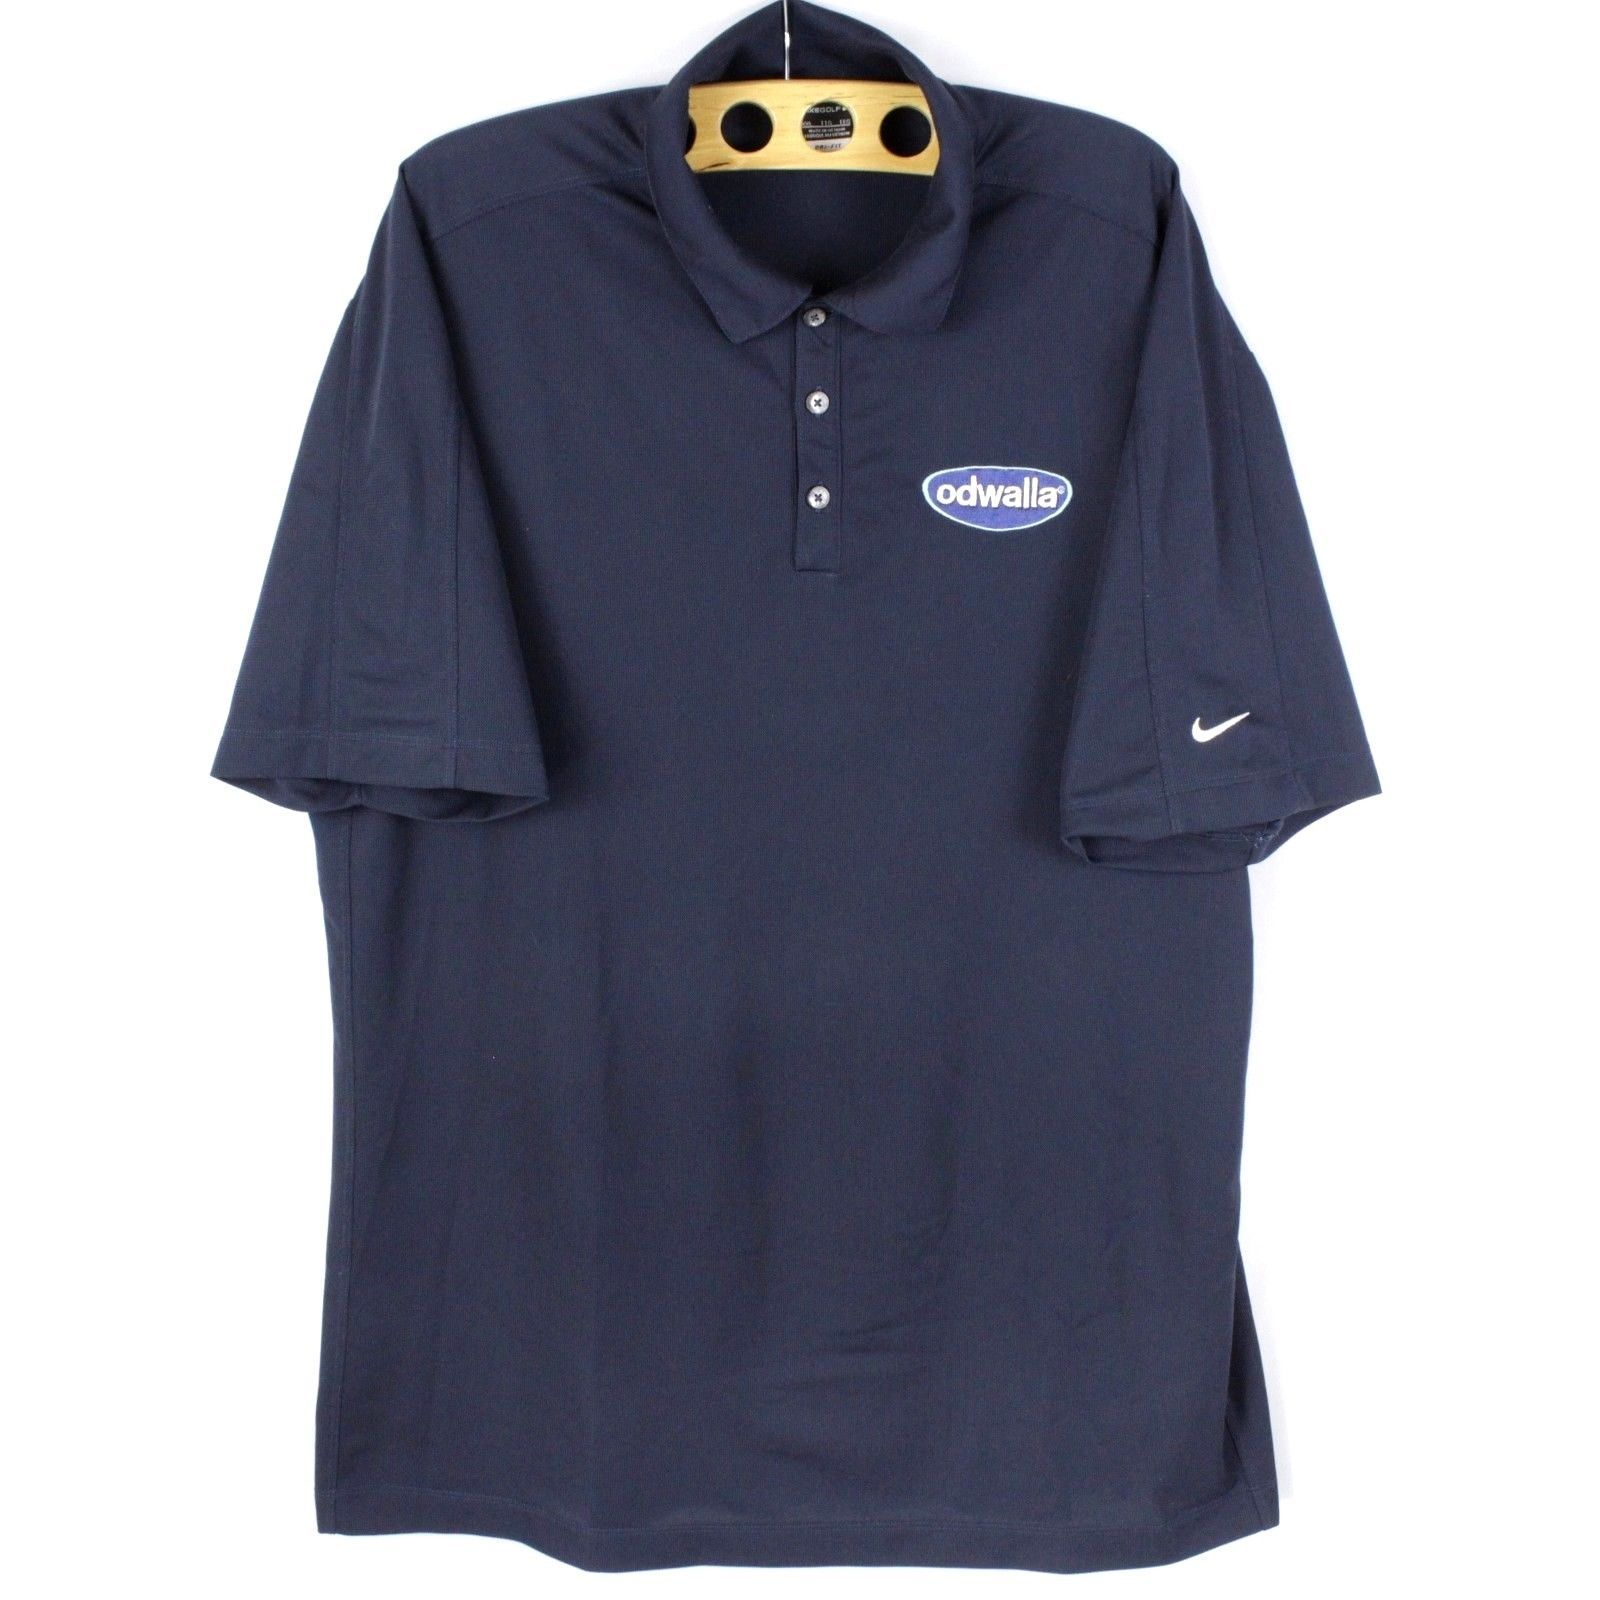 392c610d Odwalla Nike Golf Polo DRI-FIT Size 2XL and 50 similar items. 57